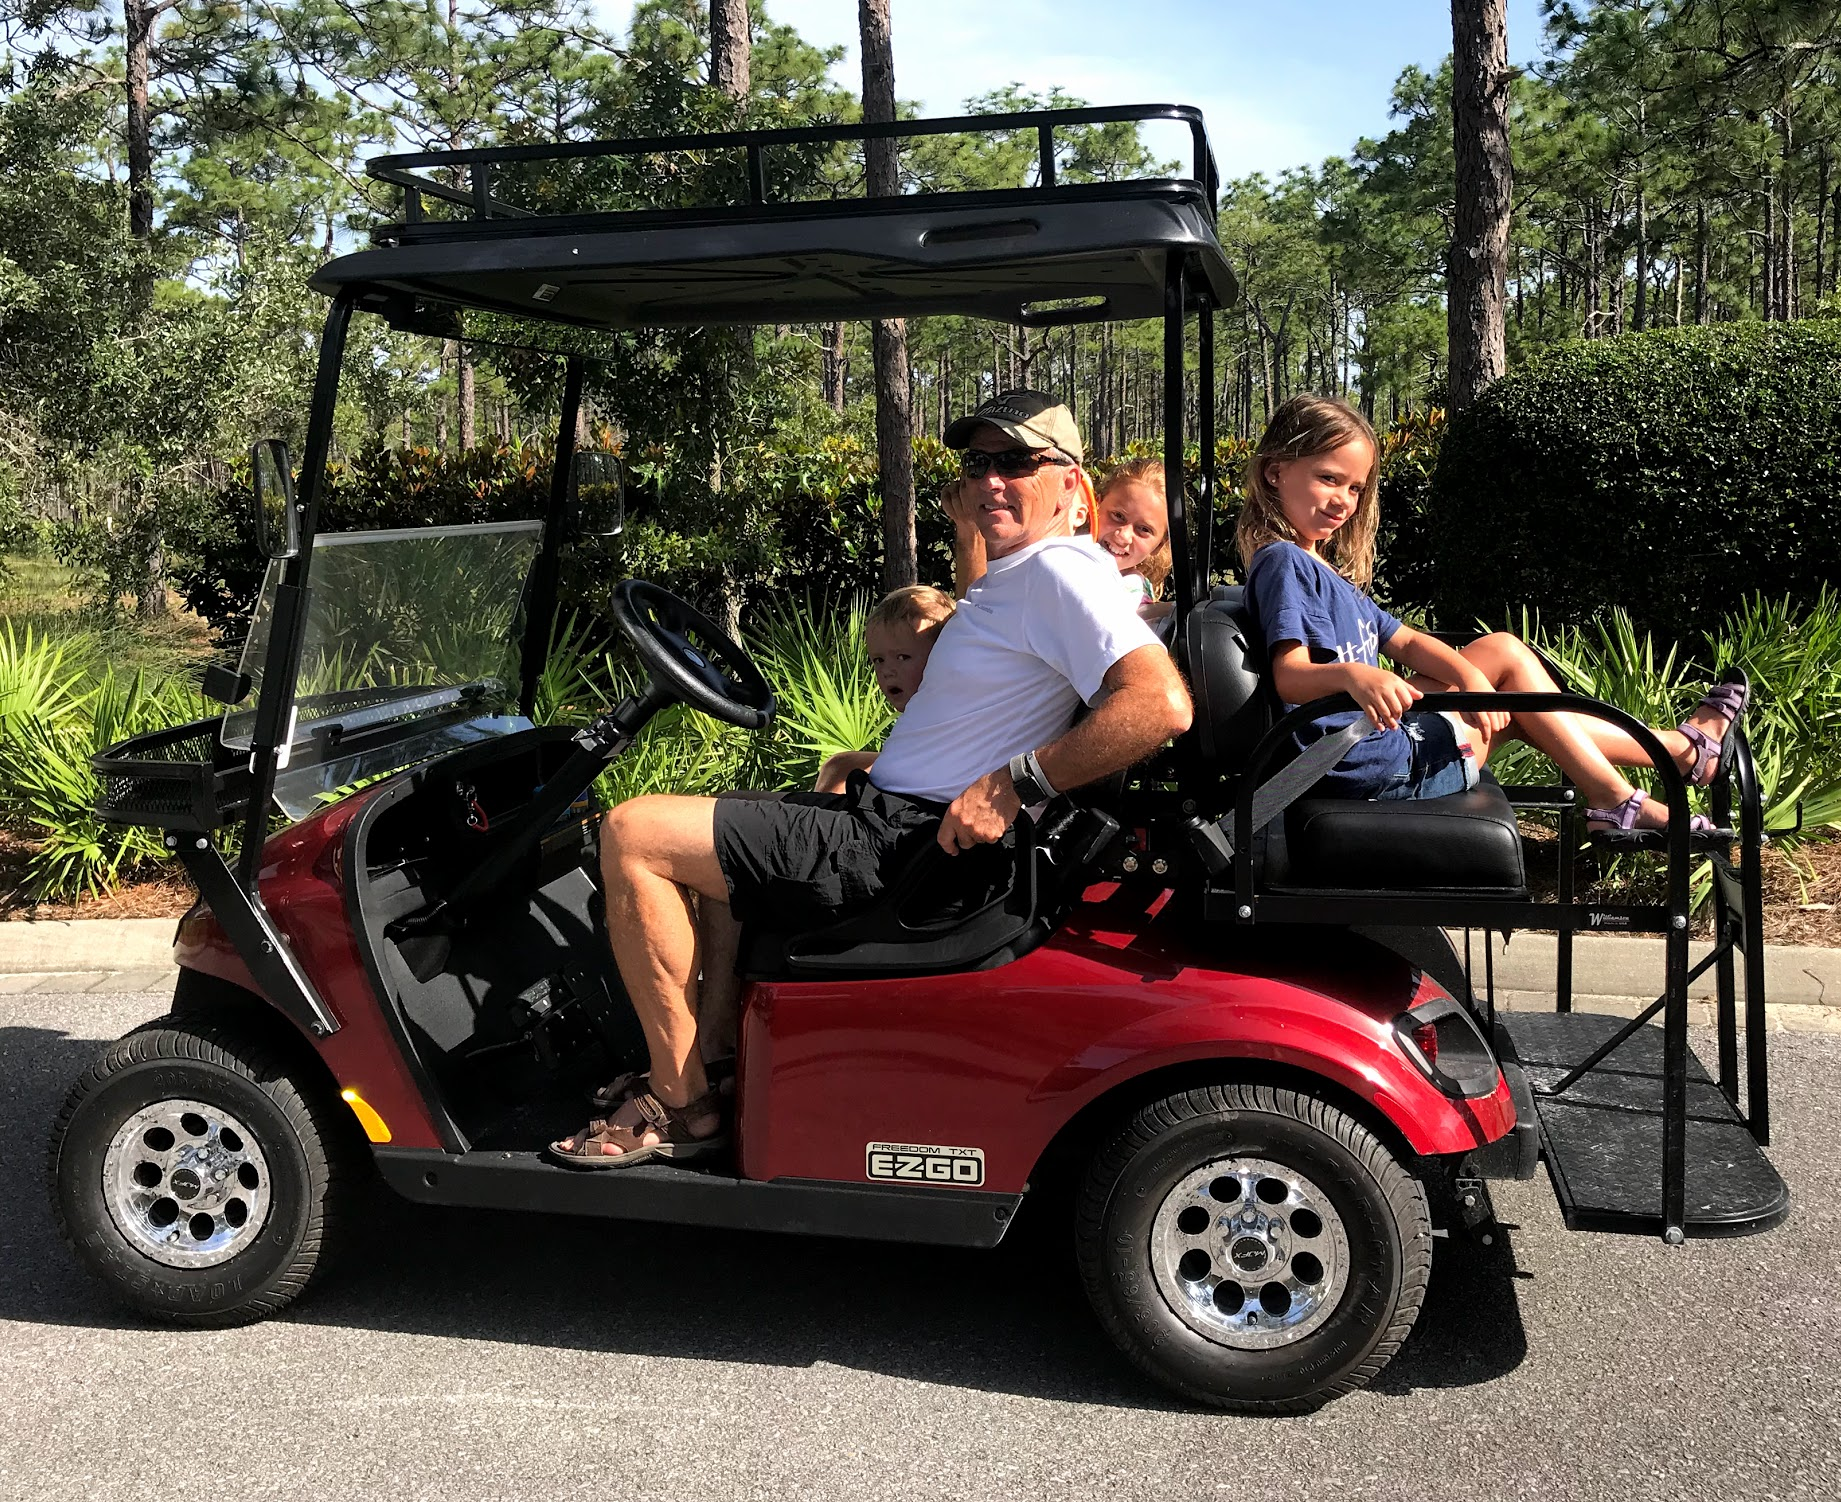 Red Black Custom Golf Carts Html. Red. Golf Cart HD Images on 14 passenger golf cart, stretch limo golf cart, biggest golf cart, 2011 precedent golf cart, honda golf cart, ezgo gas golf cart, 3 wheel golf cart, yamaha gas golf cart, man in golf cart, 4x4 golf cart, one person golf cart,